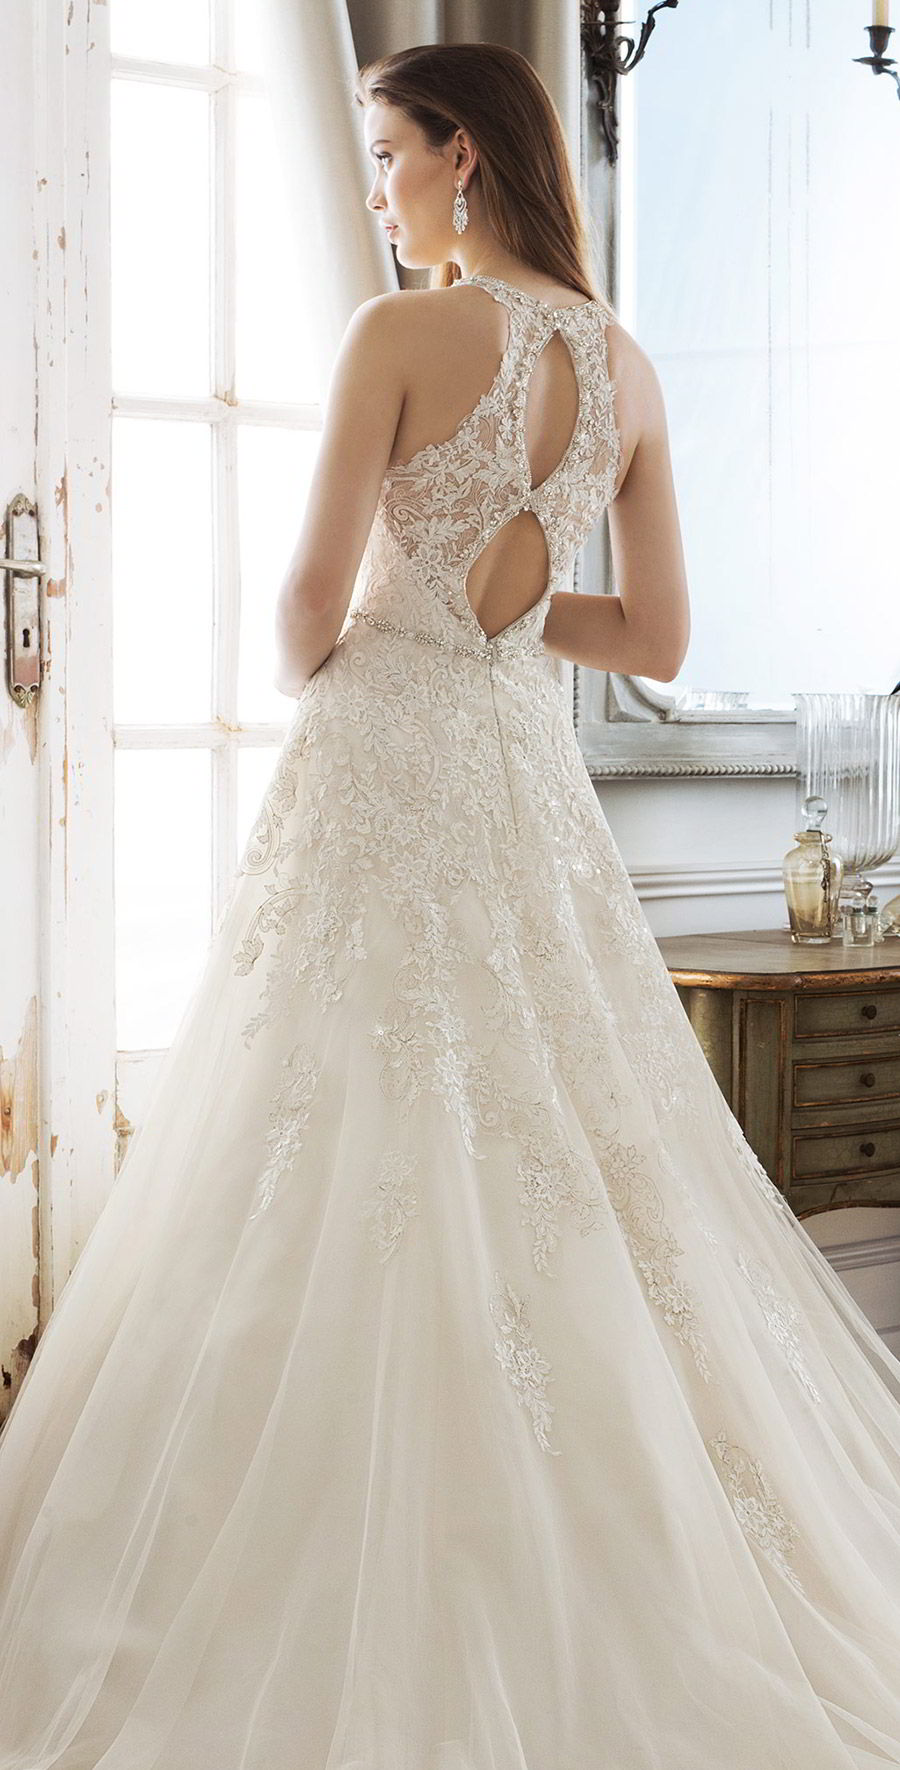 sophia tolli spring 2018 mon cheri bridals sleeveless illusion straps deep v neck beaded waist metallic lace bodice a line wedding dress ( y11878 kali) zbv chapel train romantic